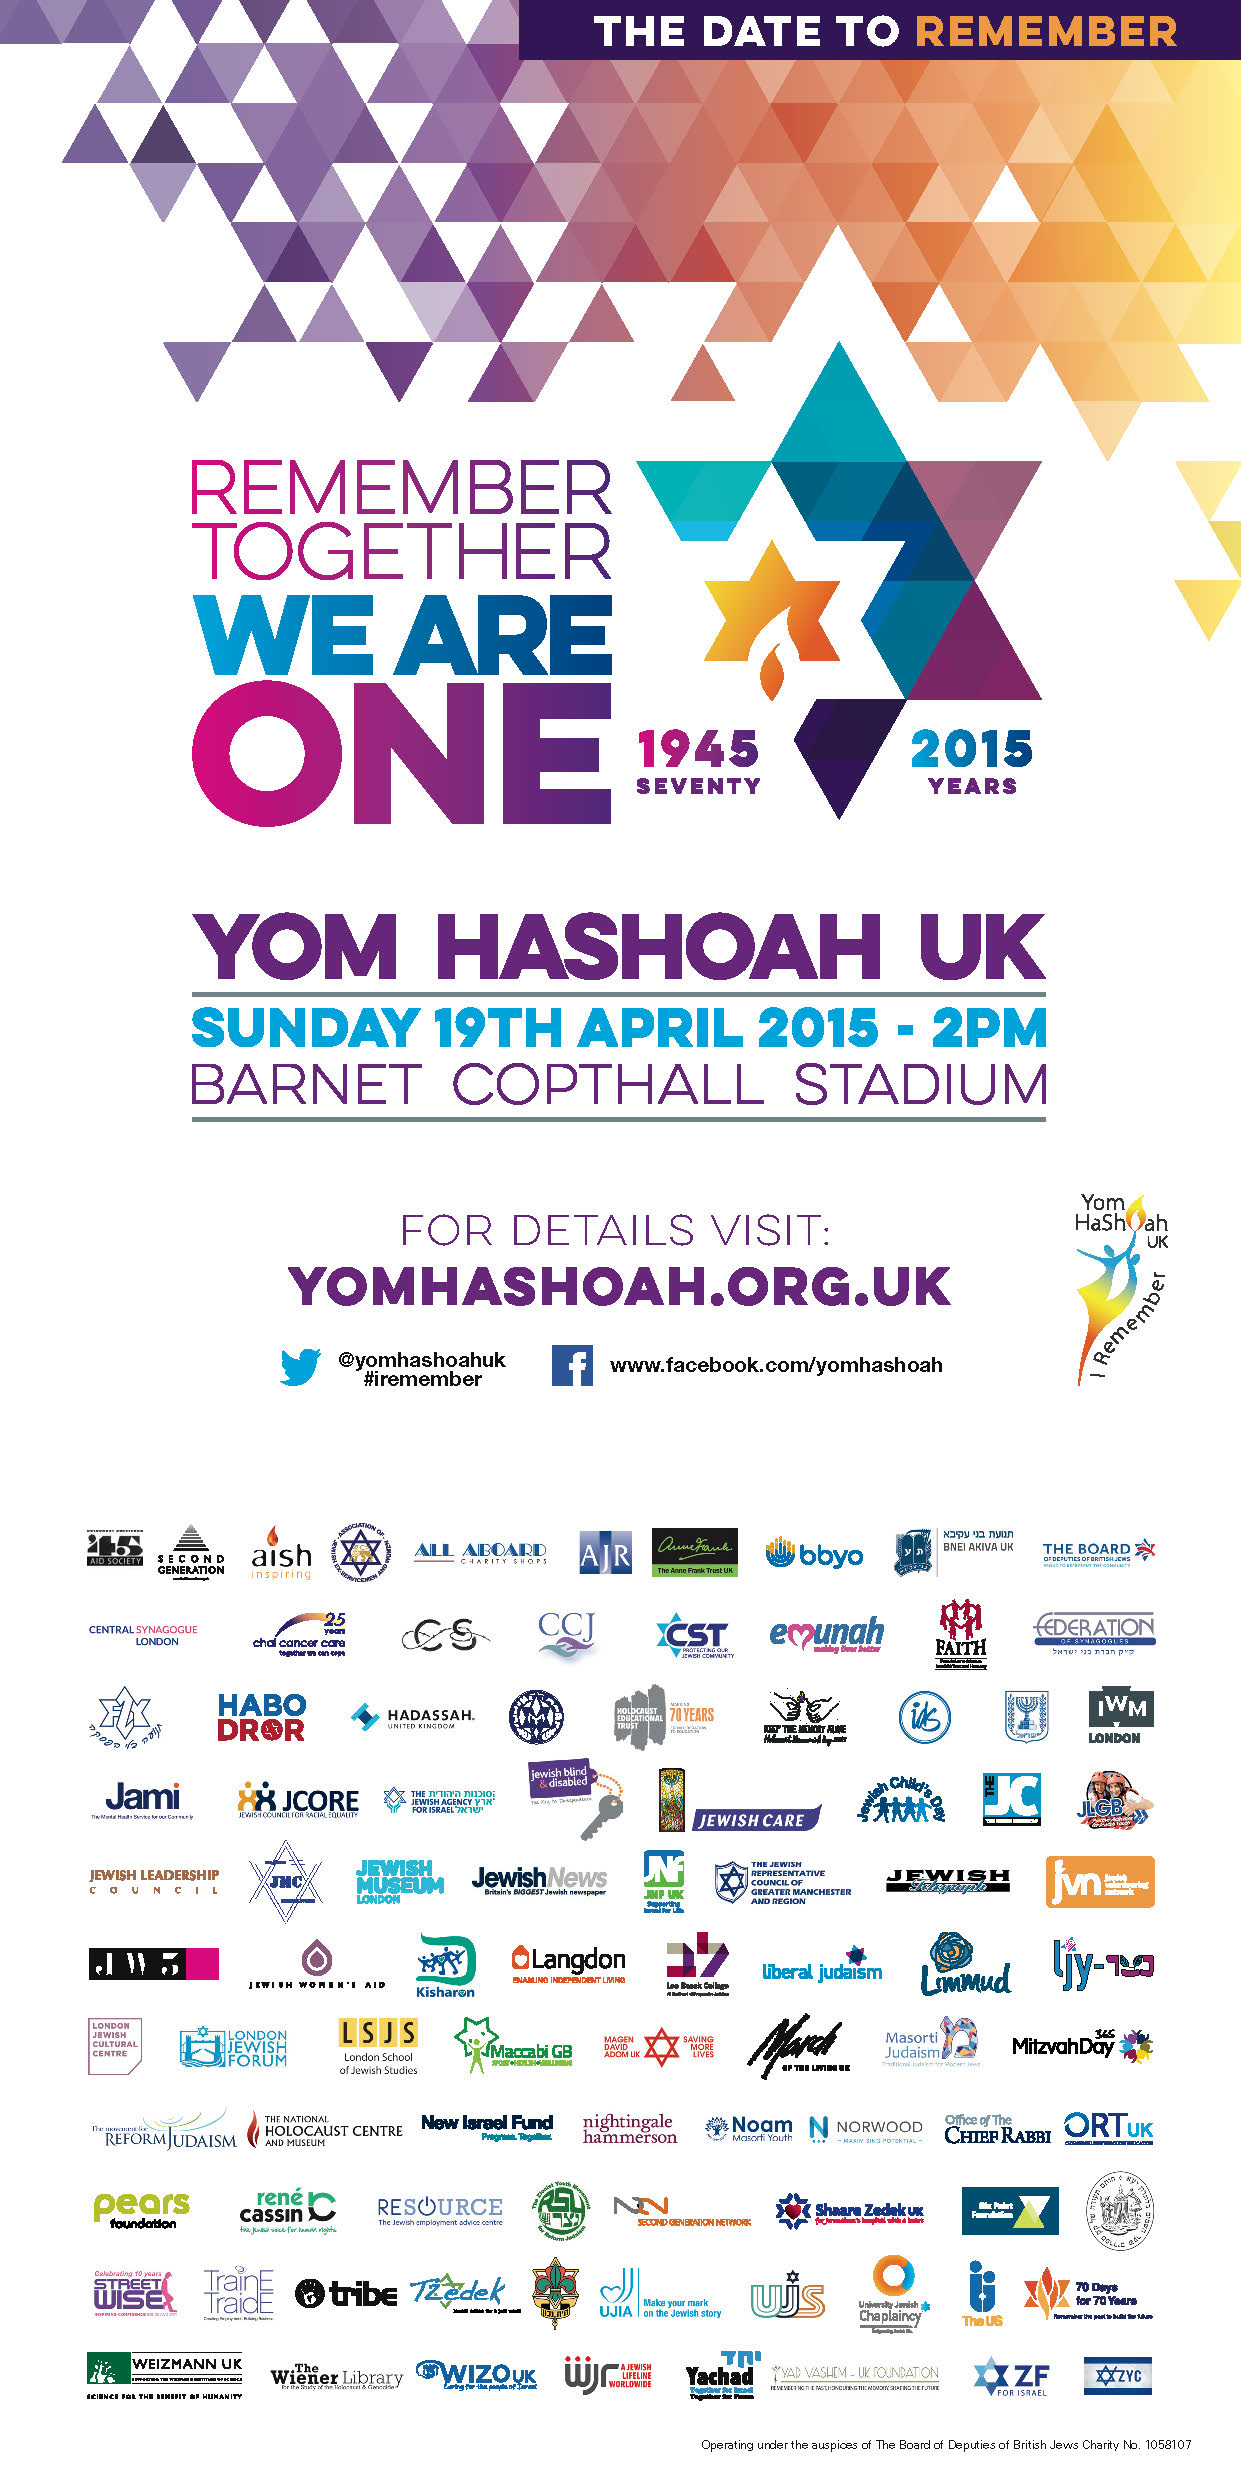 National Yom HaShoah CommemorationNational Yom HaShoah Commemoration 'Remember Together - We Are One'